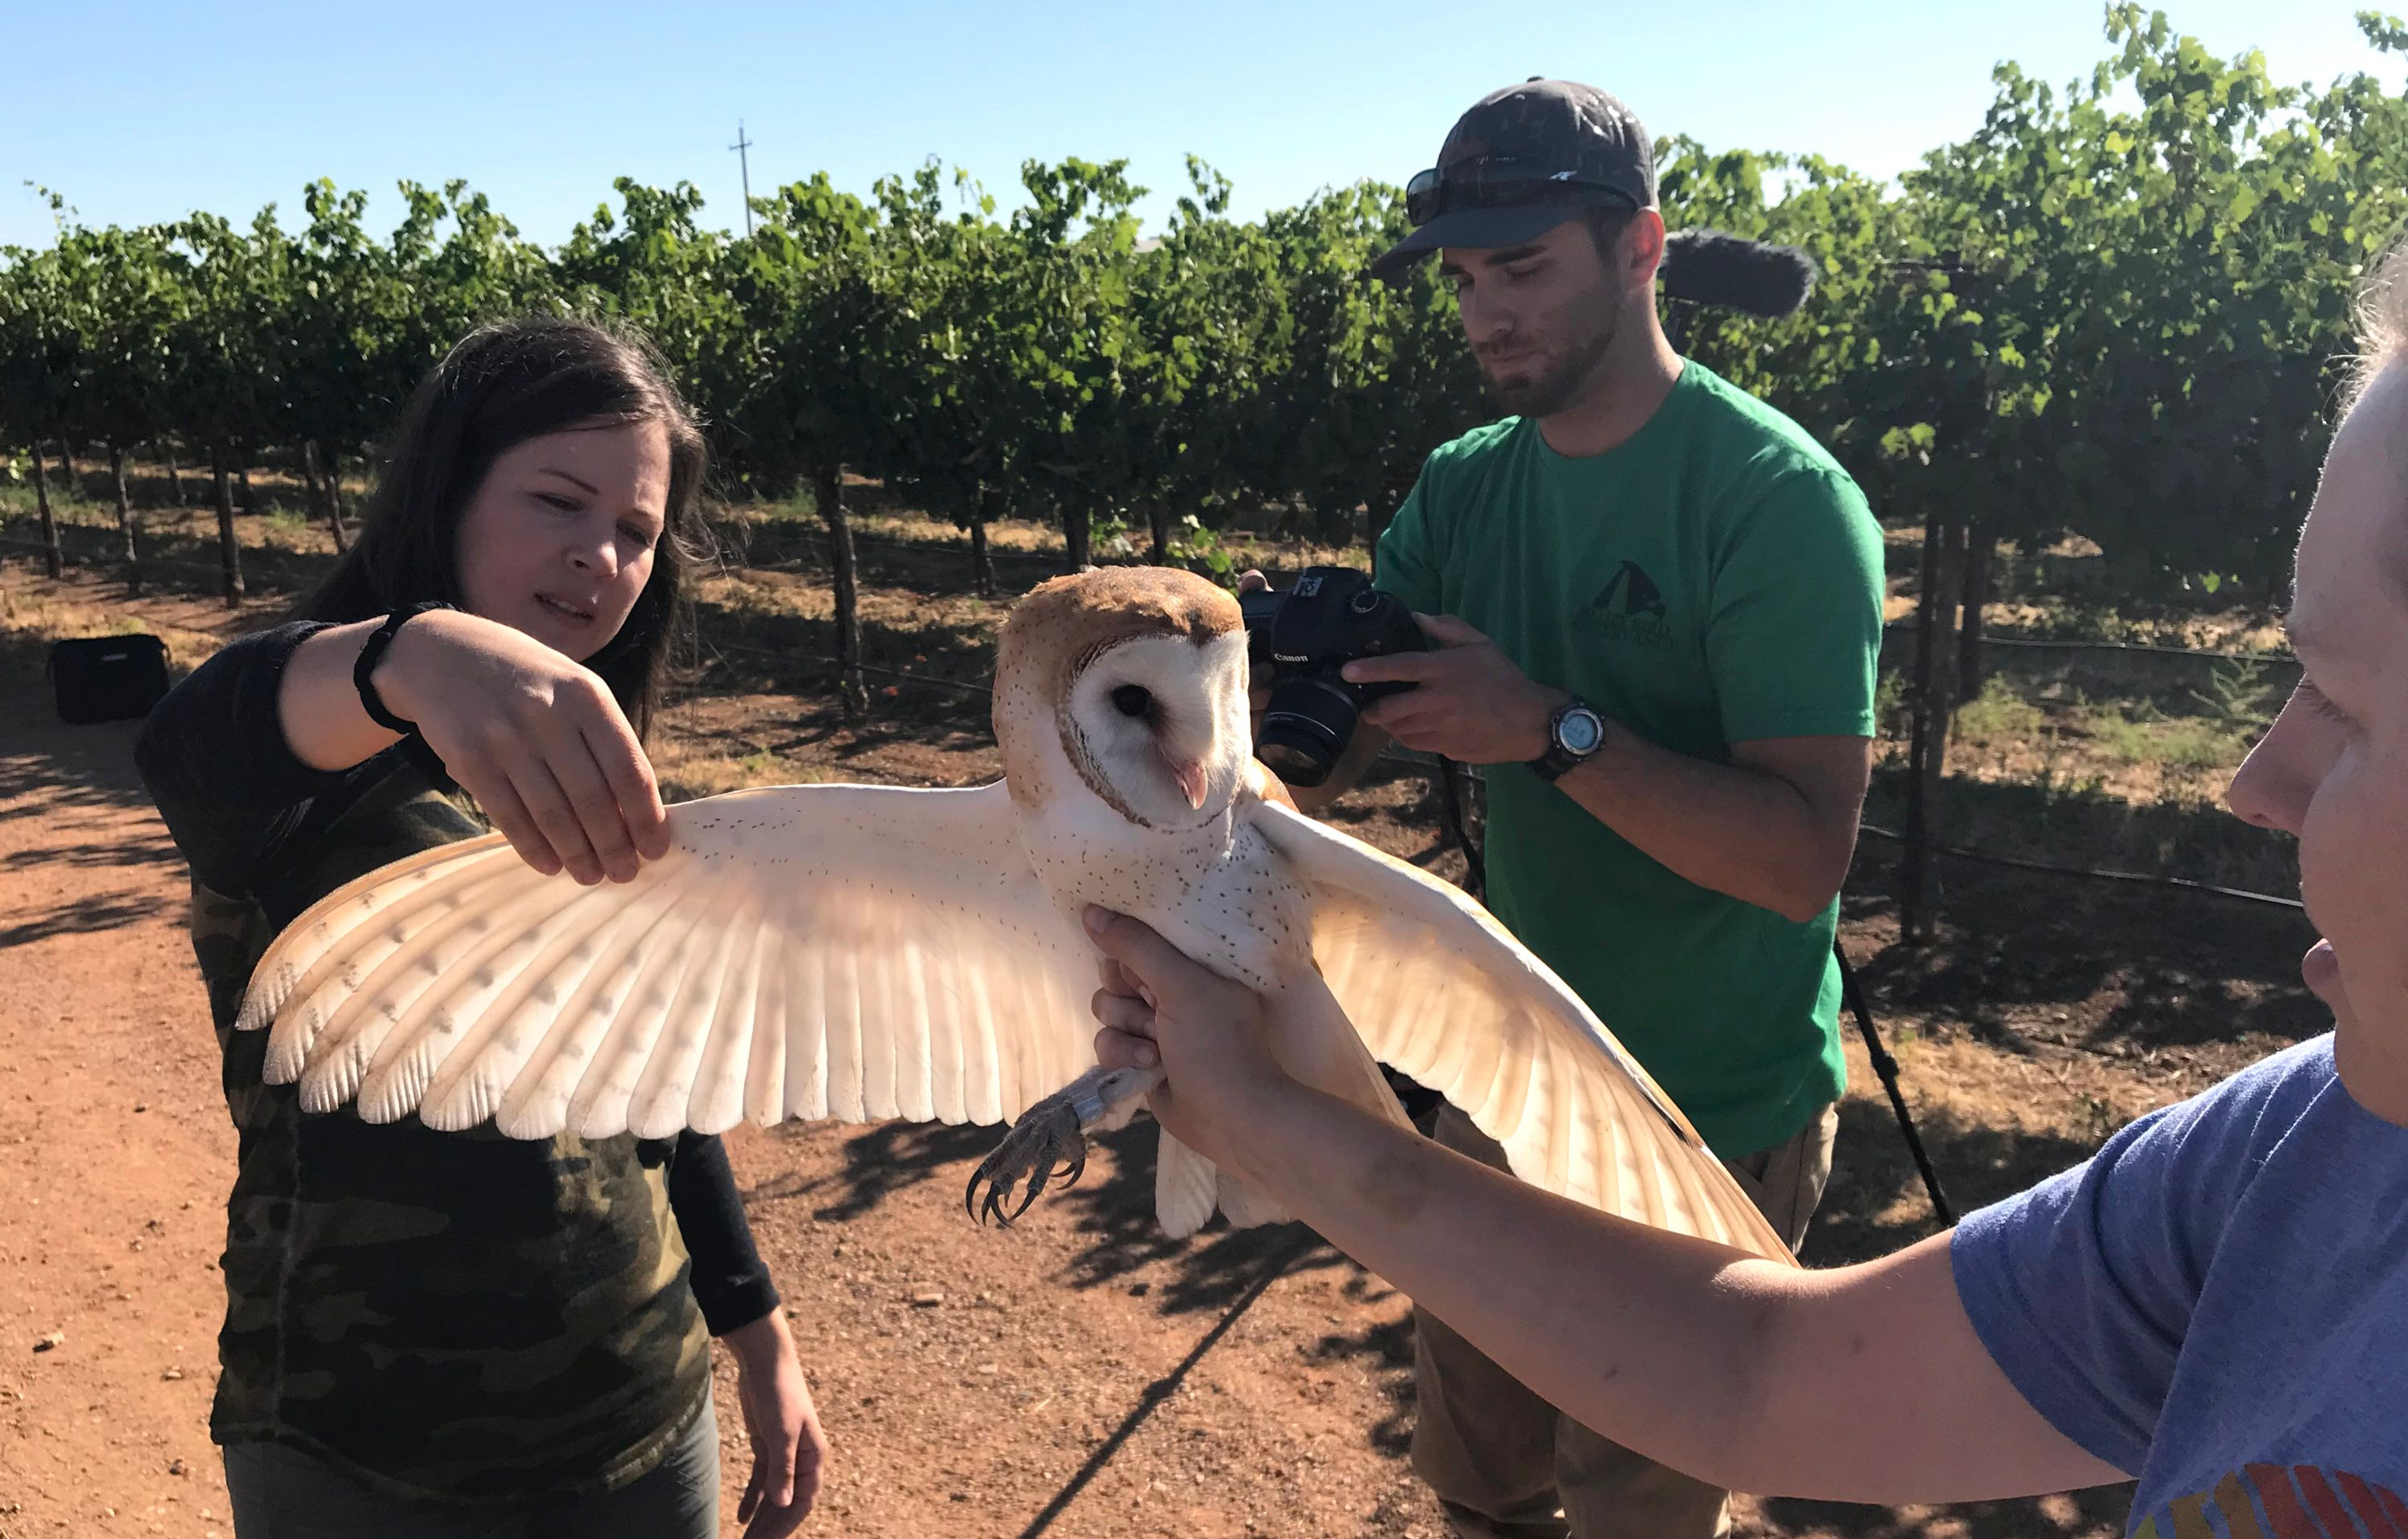 UC Davis students breanna Martinico, Ryan Bourbour and Emily Phillips photograph a barn owl